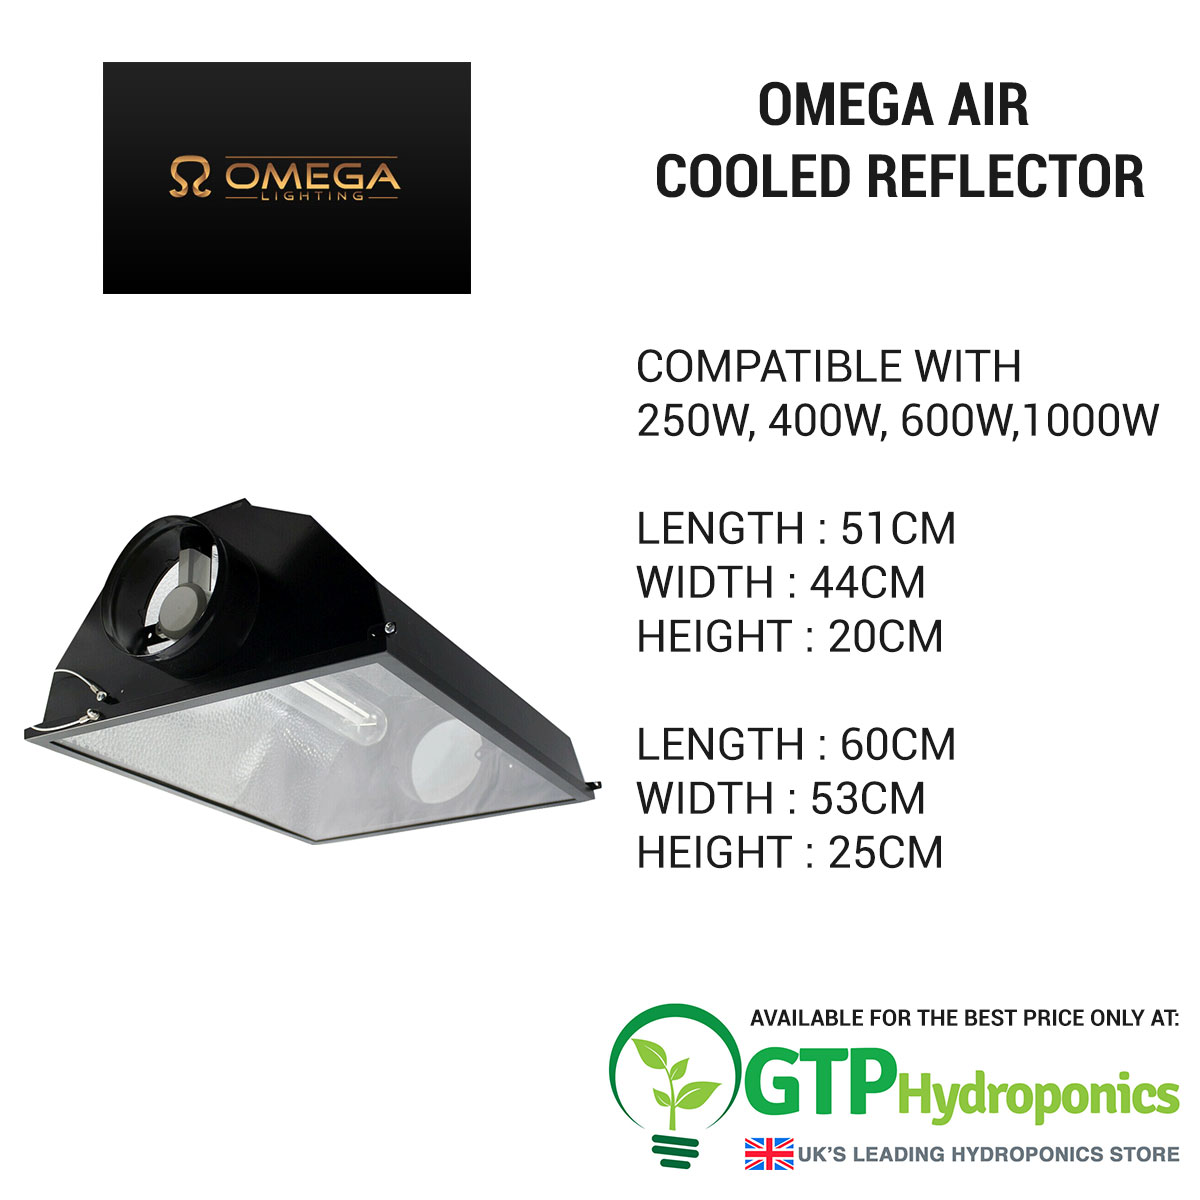 Omega Air Cooled Reflector overview